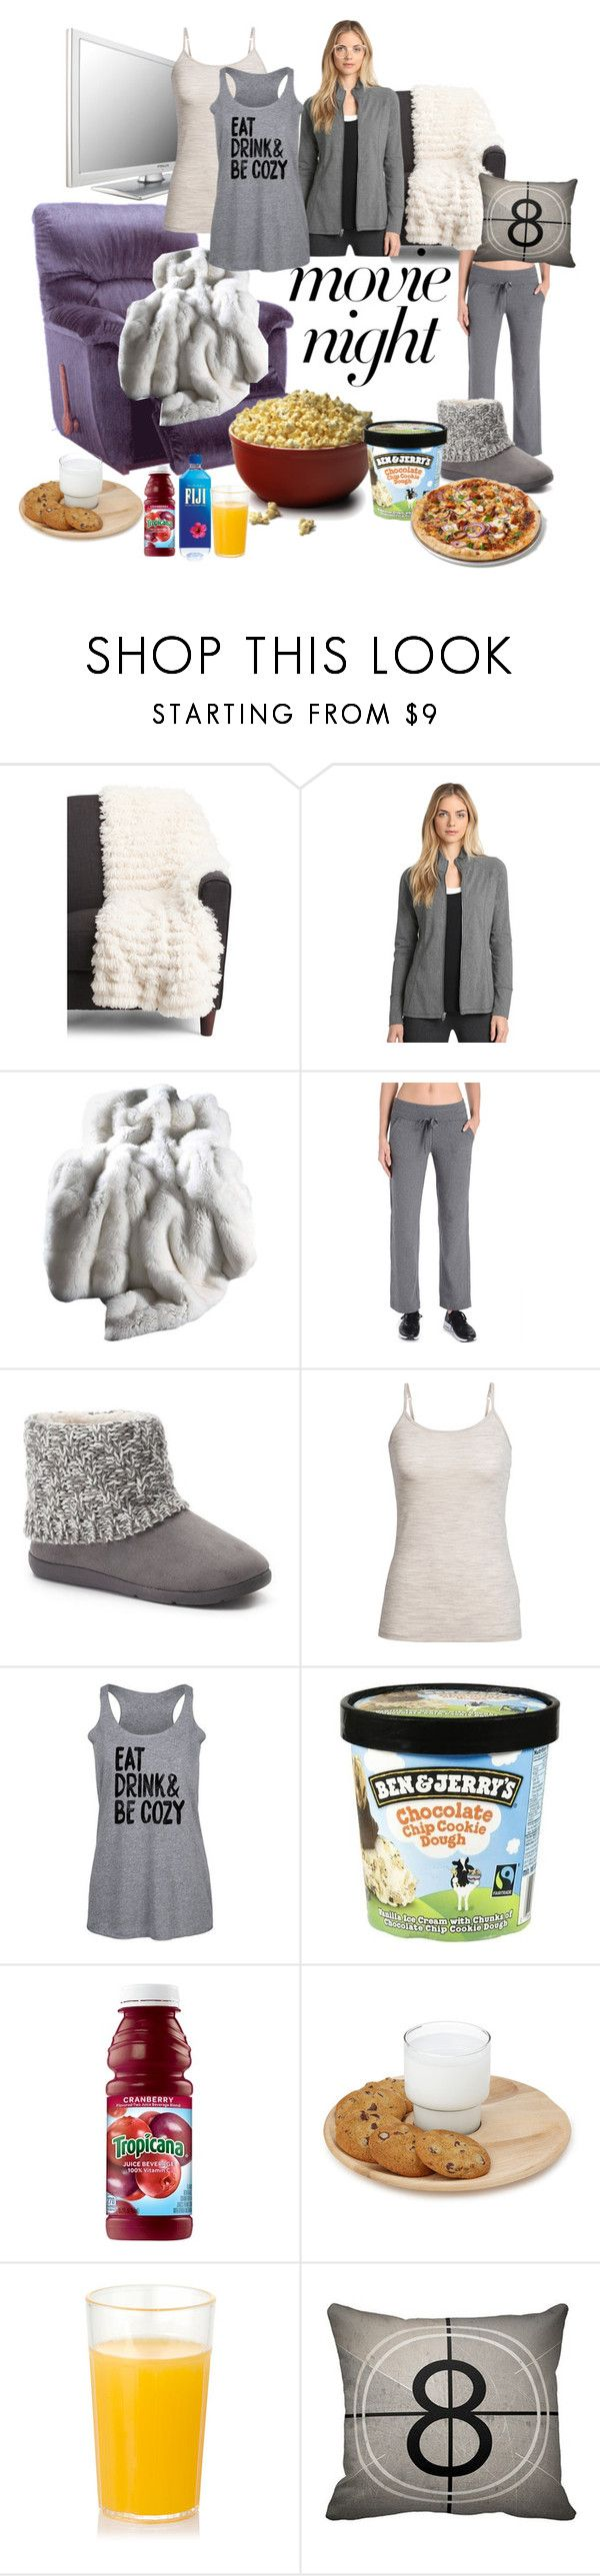 """movie night"" by caroline-buster-brown ❤ liked on Polyvore featuring Danskin, SONOMA Goods for Life, Icebreaker and movieNight"